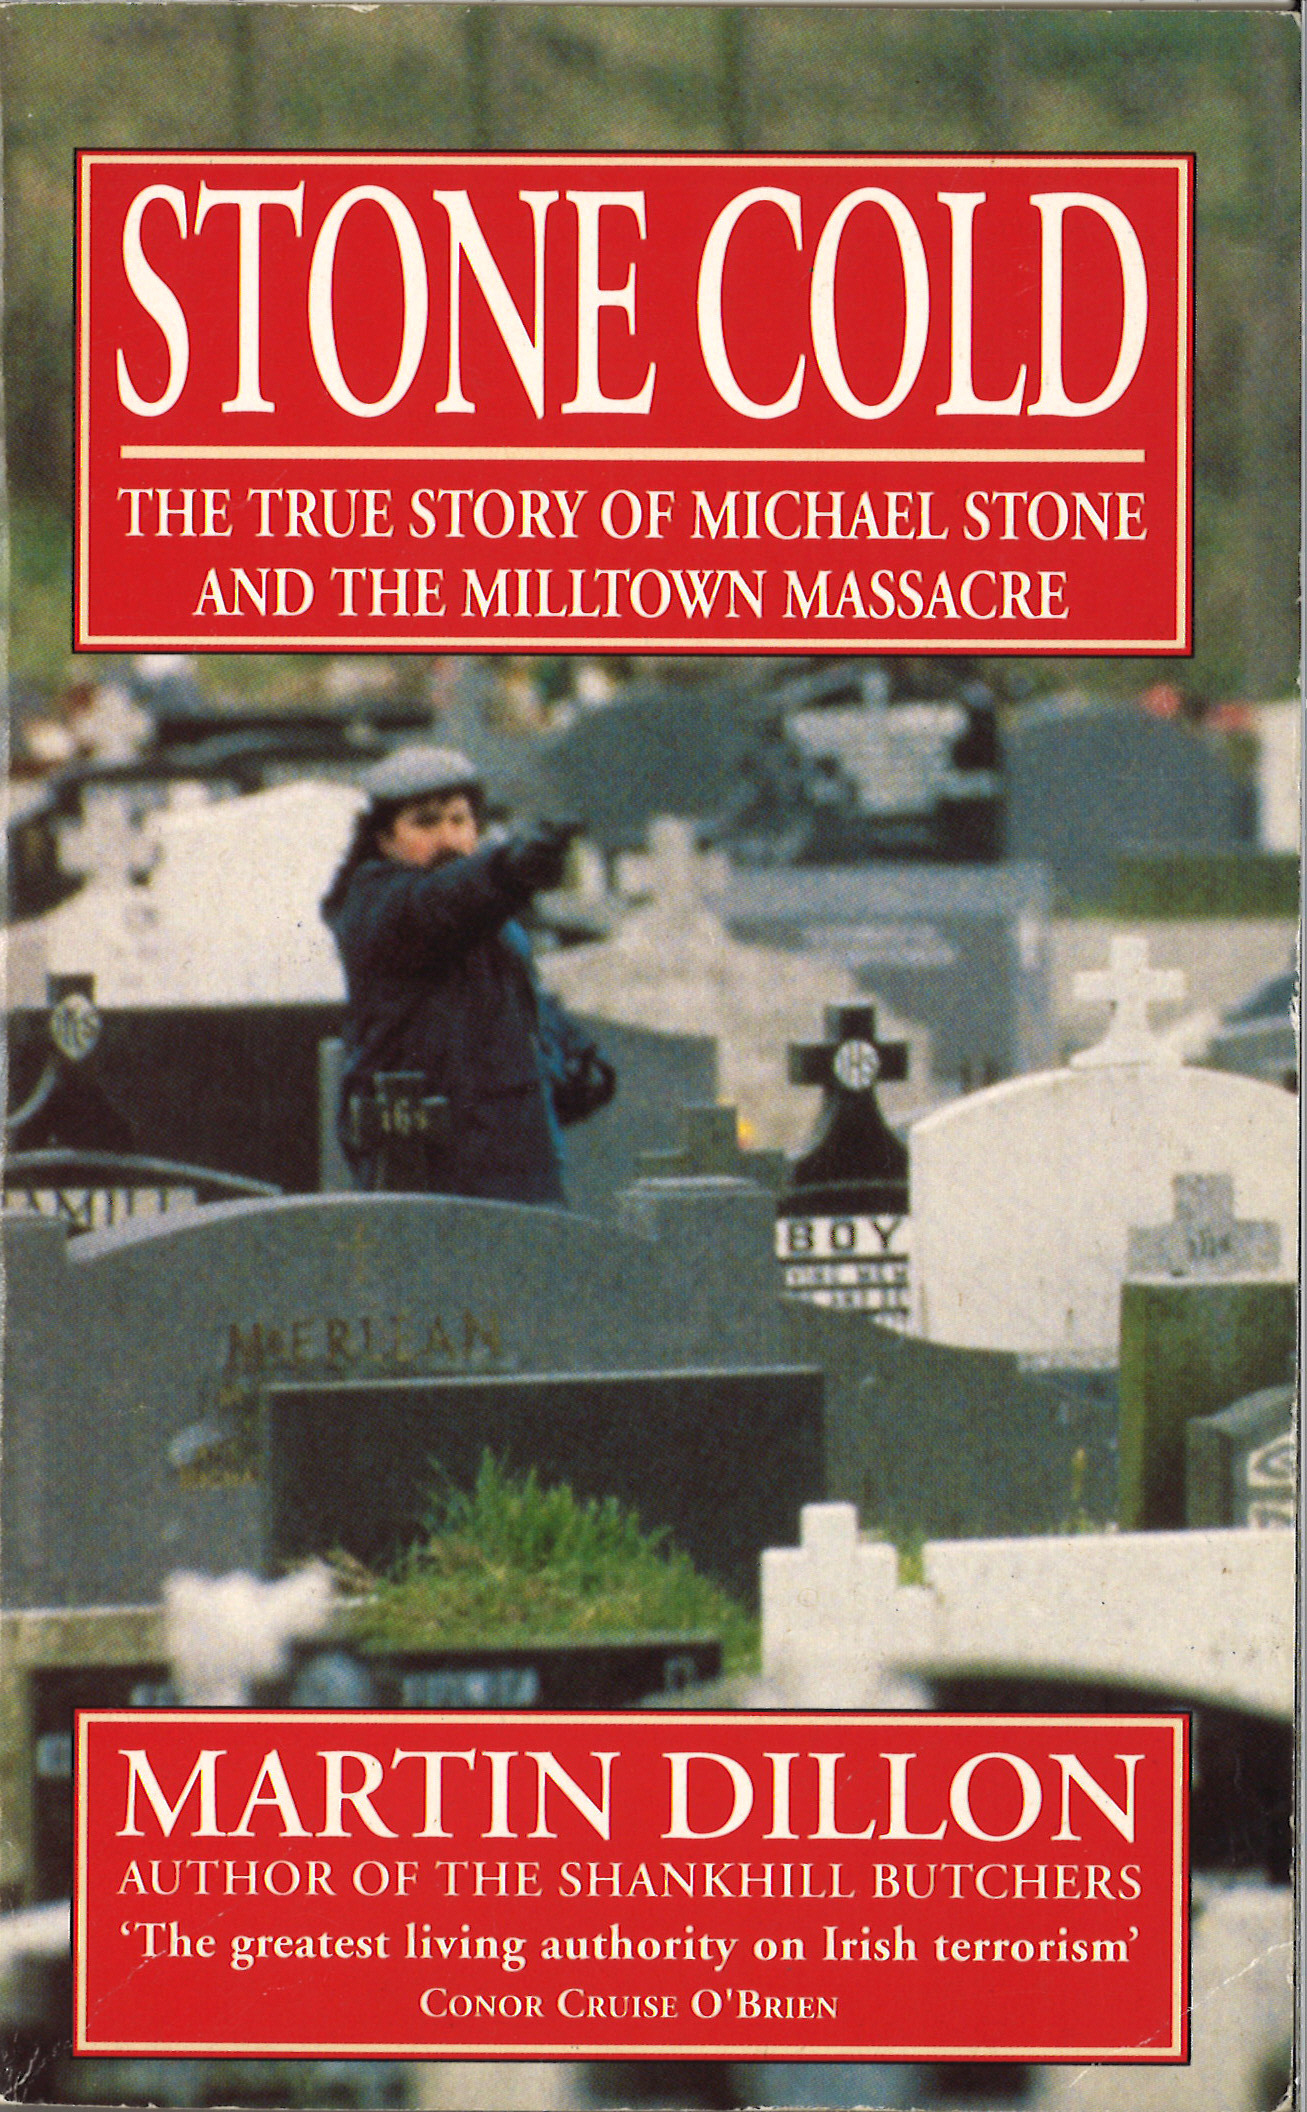 Stone Cold The True Story of Michael Stone and the Milltown Massacre